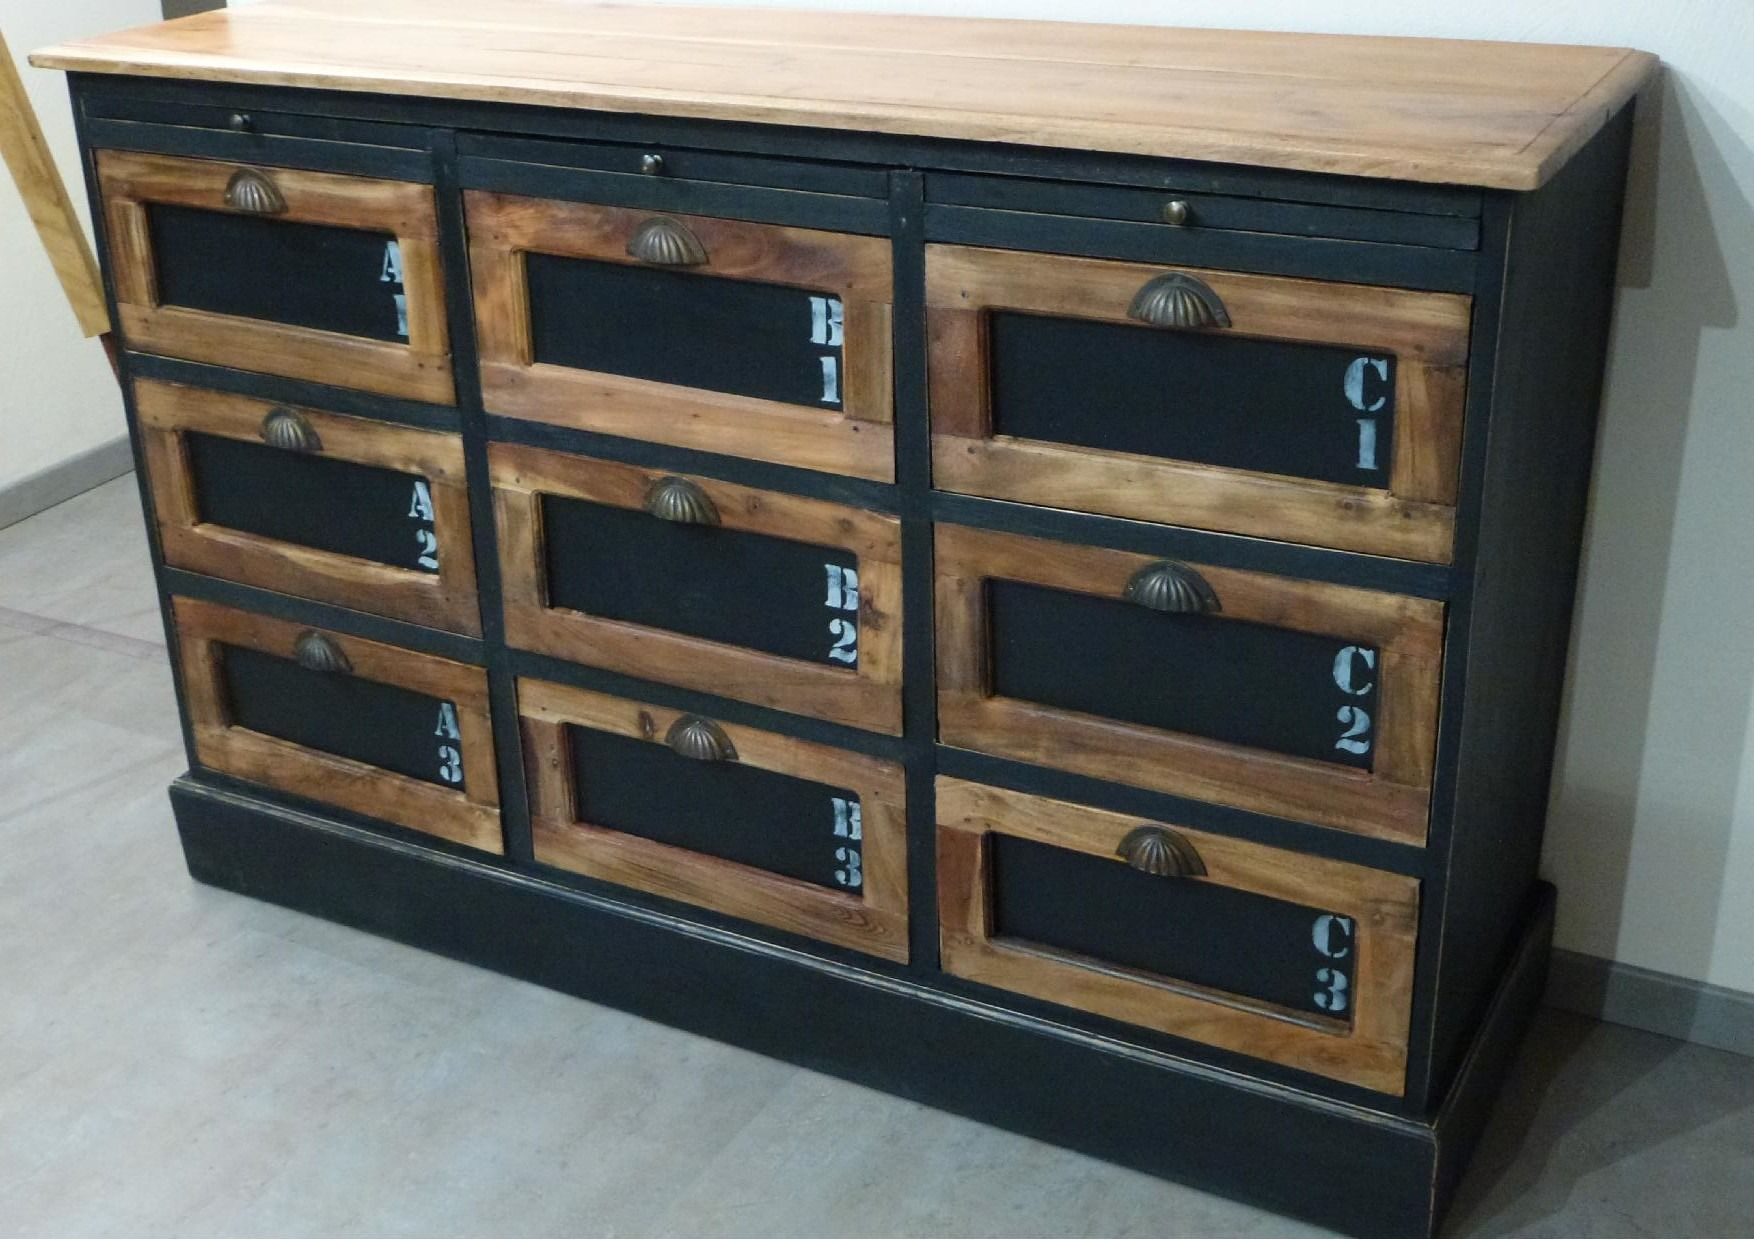 relooker un meuble relooker un meuble ancien relooker meuble ancien astuces dacco et photos. Black Bedroom Furniture Sets. Home Design Ideas